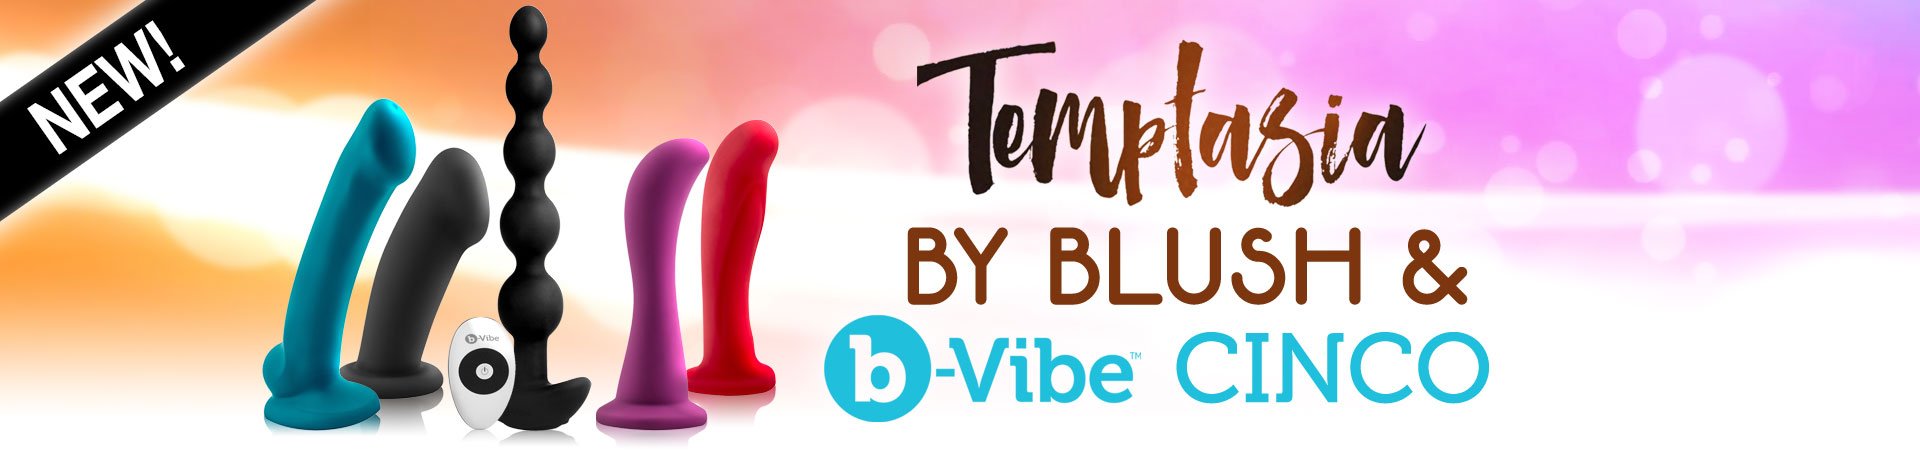 New At Shevibe! Temptasia By Blush & b-Vibe Cinco